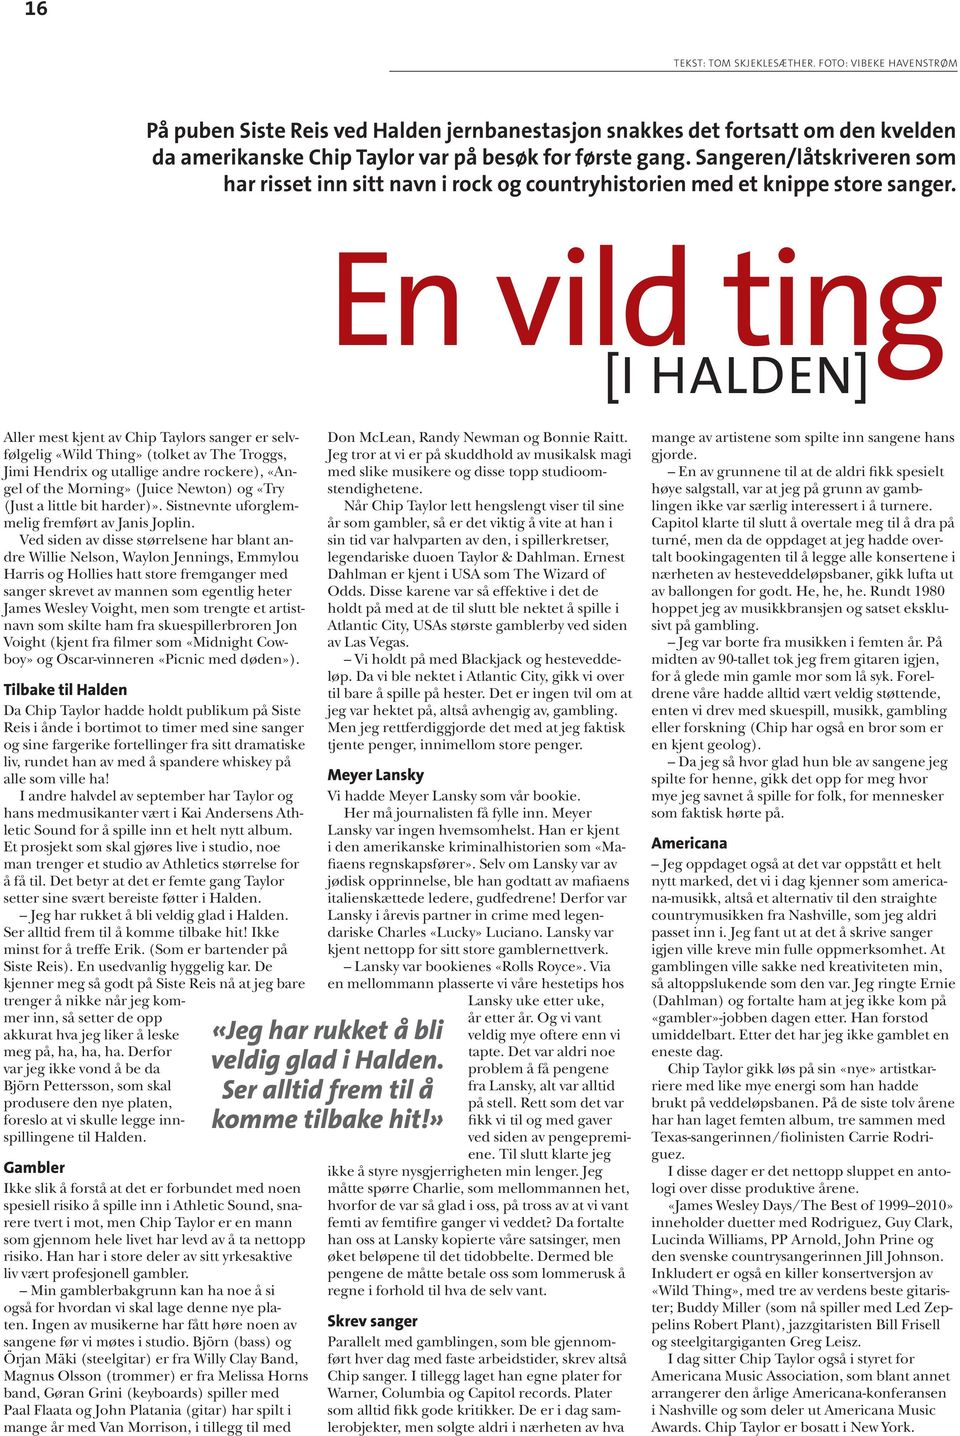 En vild ting [i Halden] Aller mest kjent av Chip Taylors sanger er selvfølgelig «Wild Thing» (tolket av The Troggs, Jimi Hendrix og utallige andre rockere), «Angel of the Morning» (Juice Newton) og